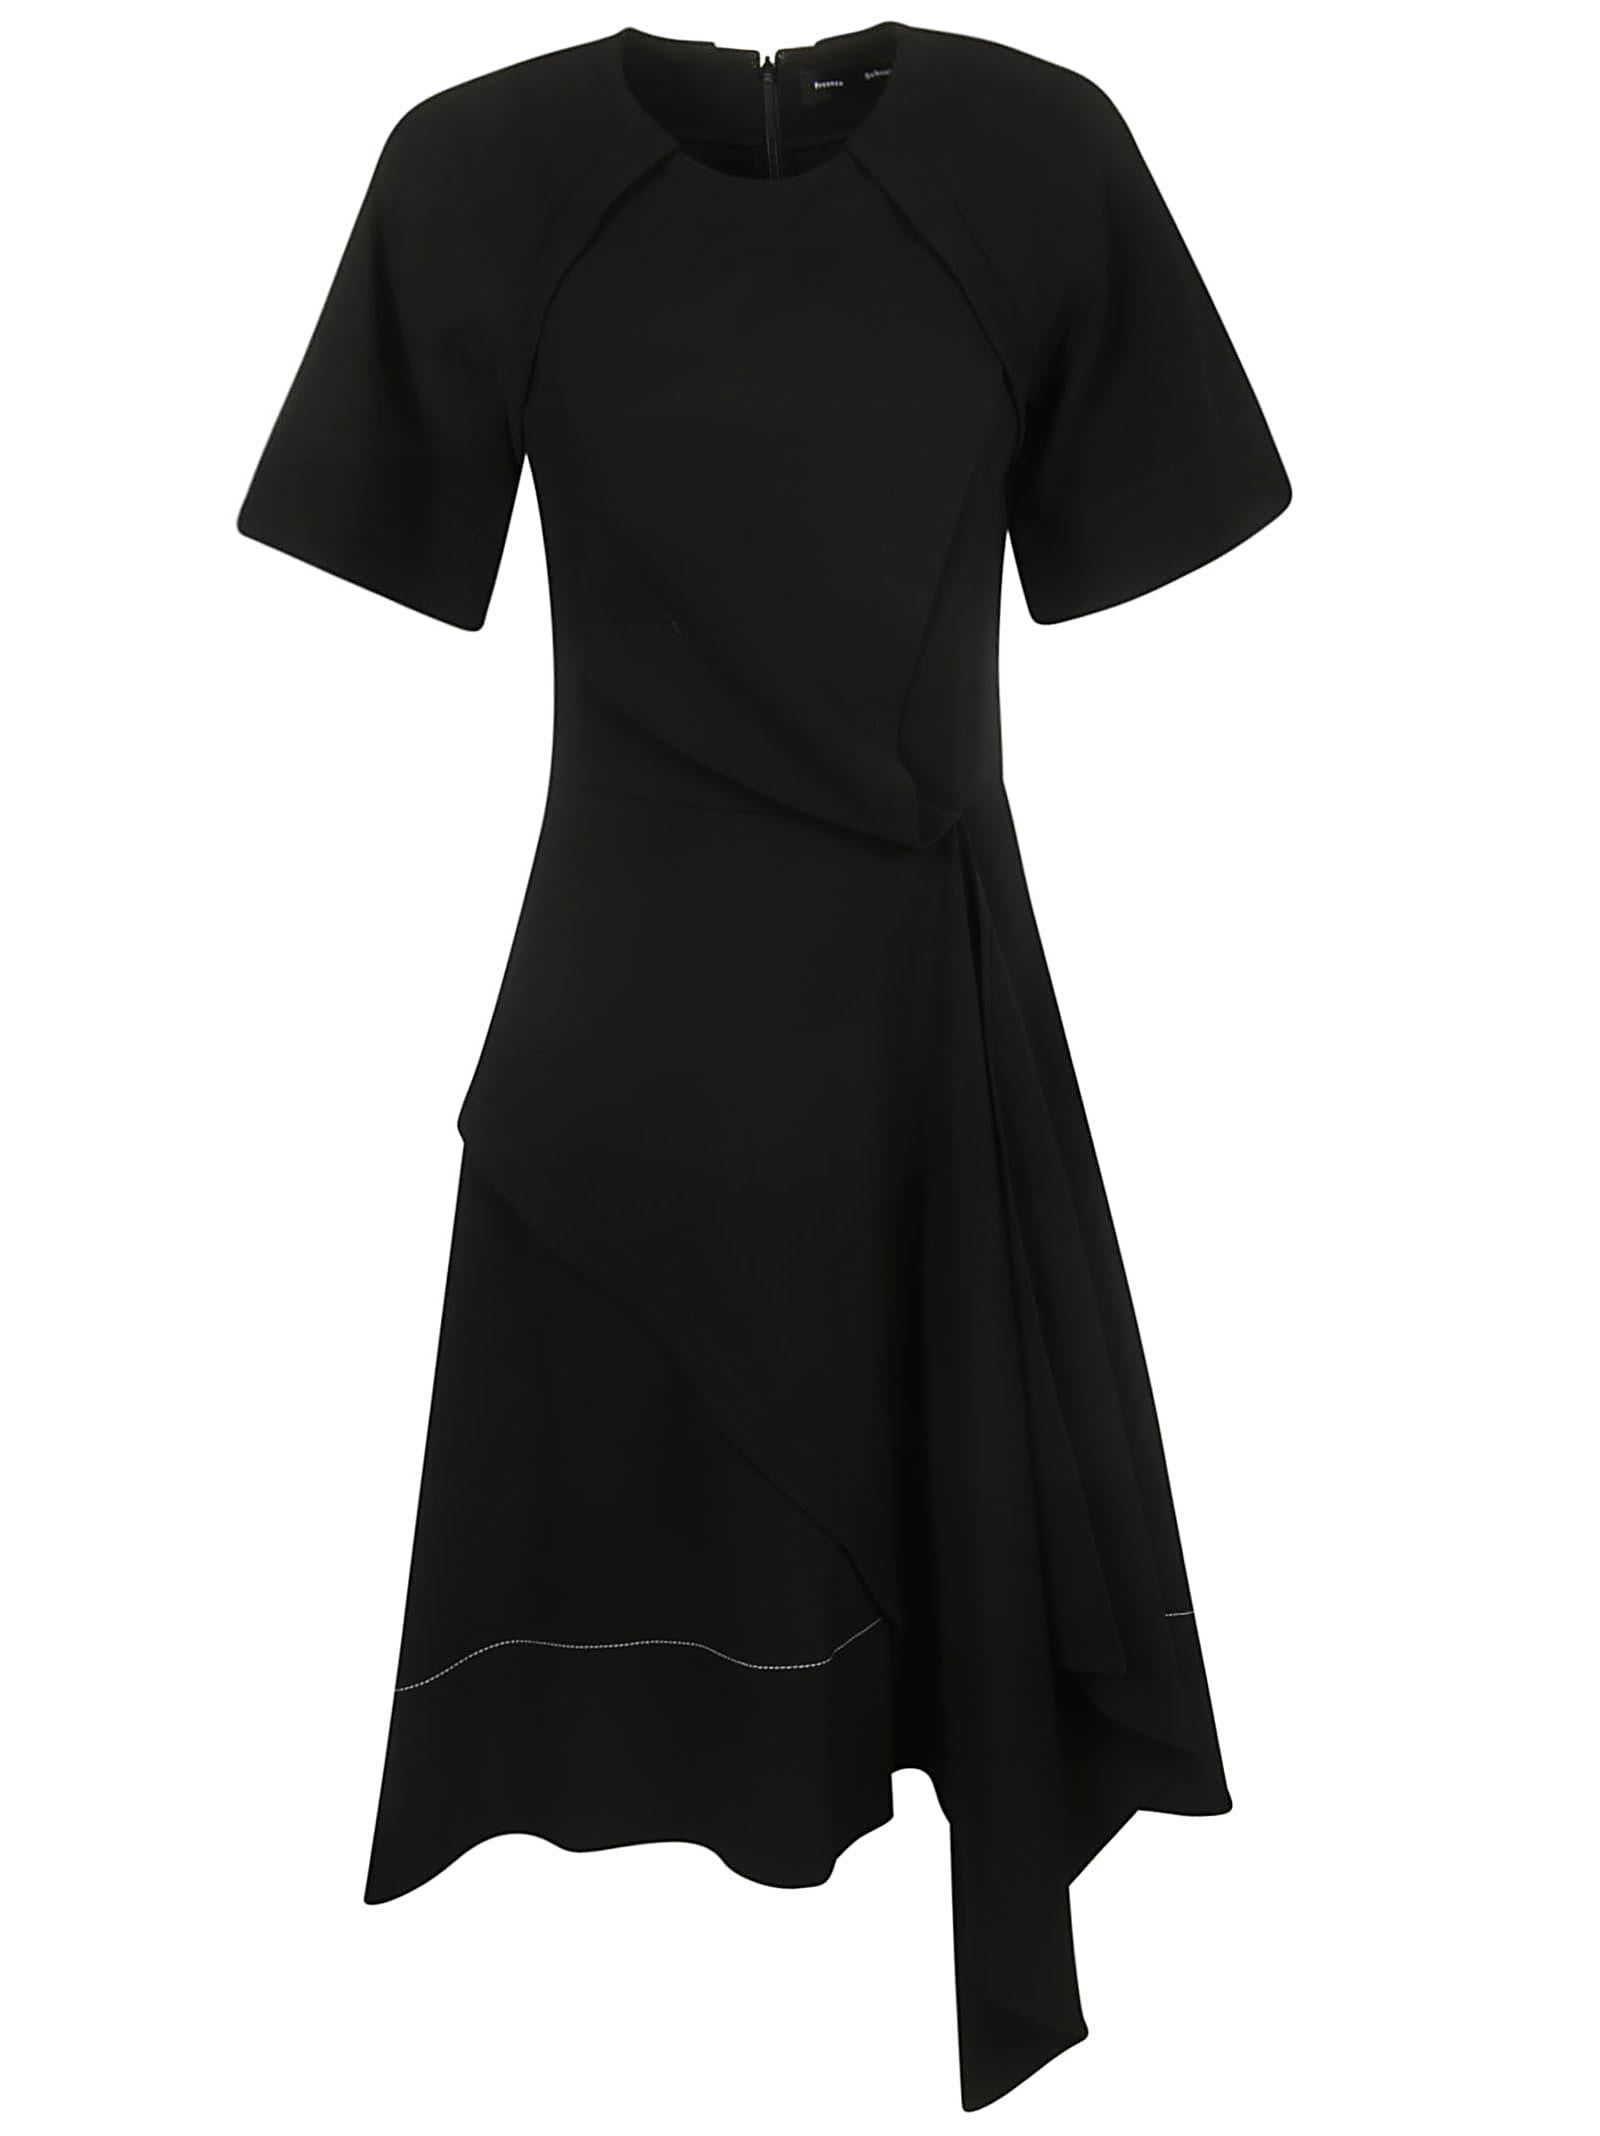 Proenza Schouler Draped Dress